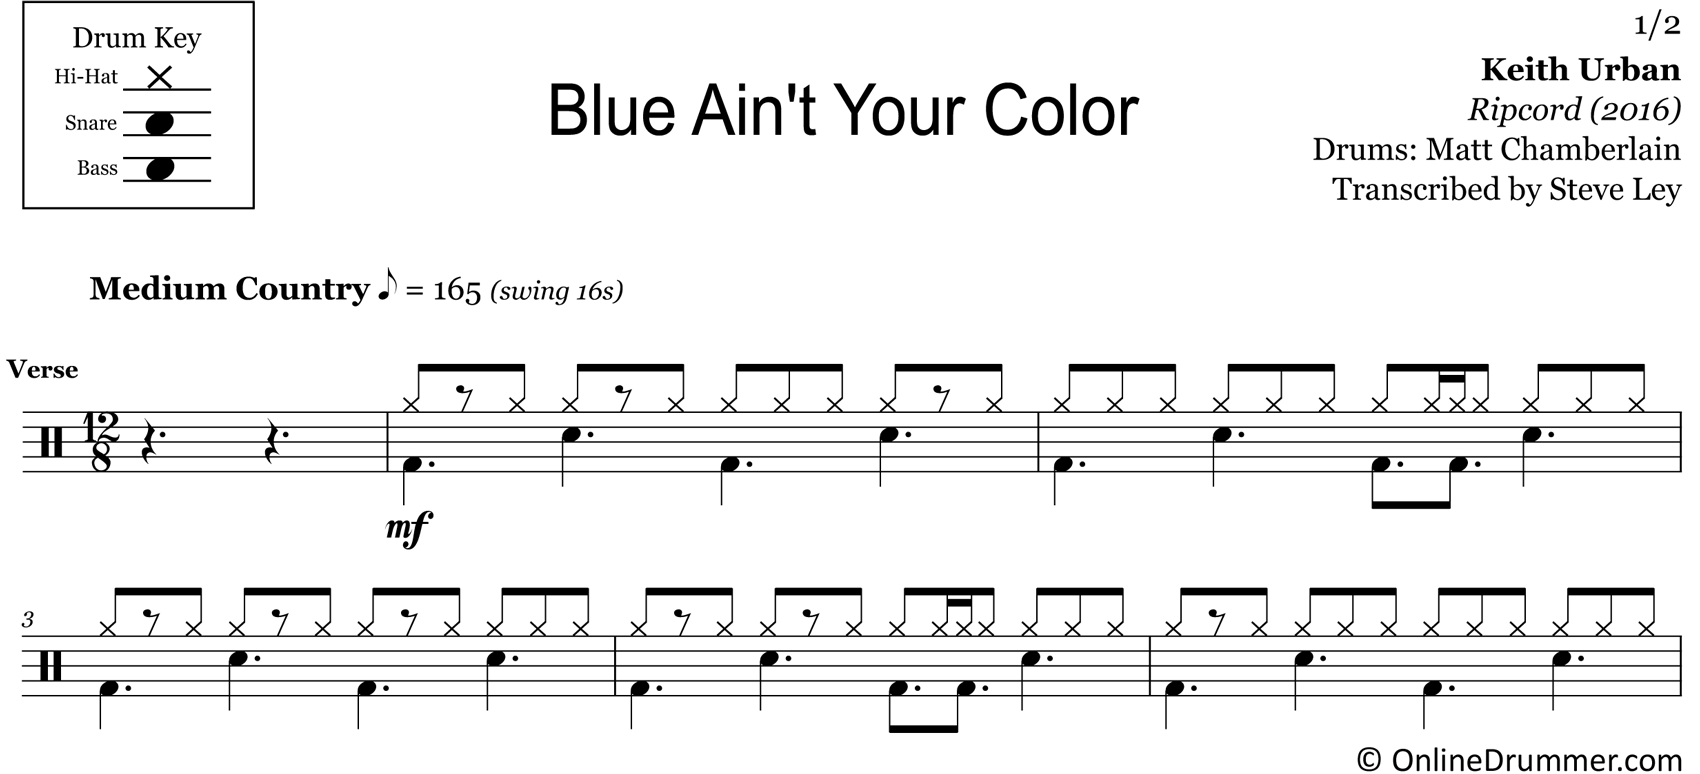 Blue Ain't Your Color - Keith Urban - Drum Sheet Music